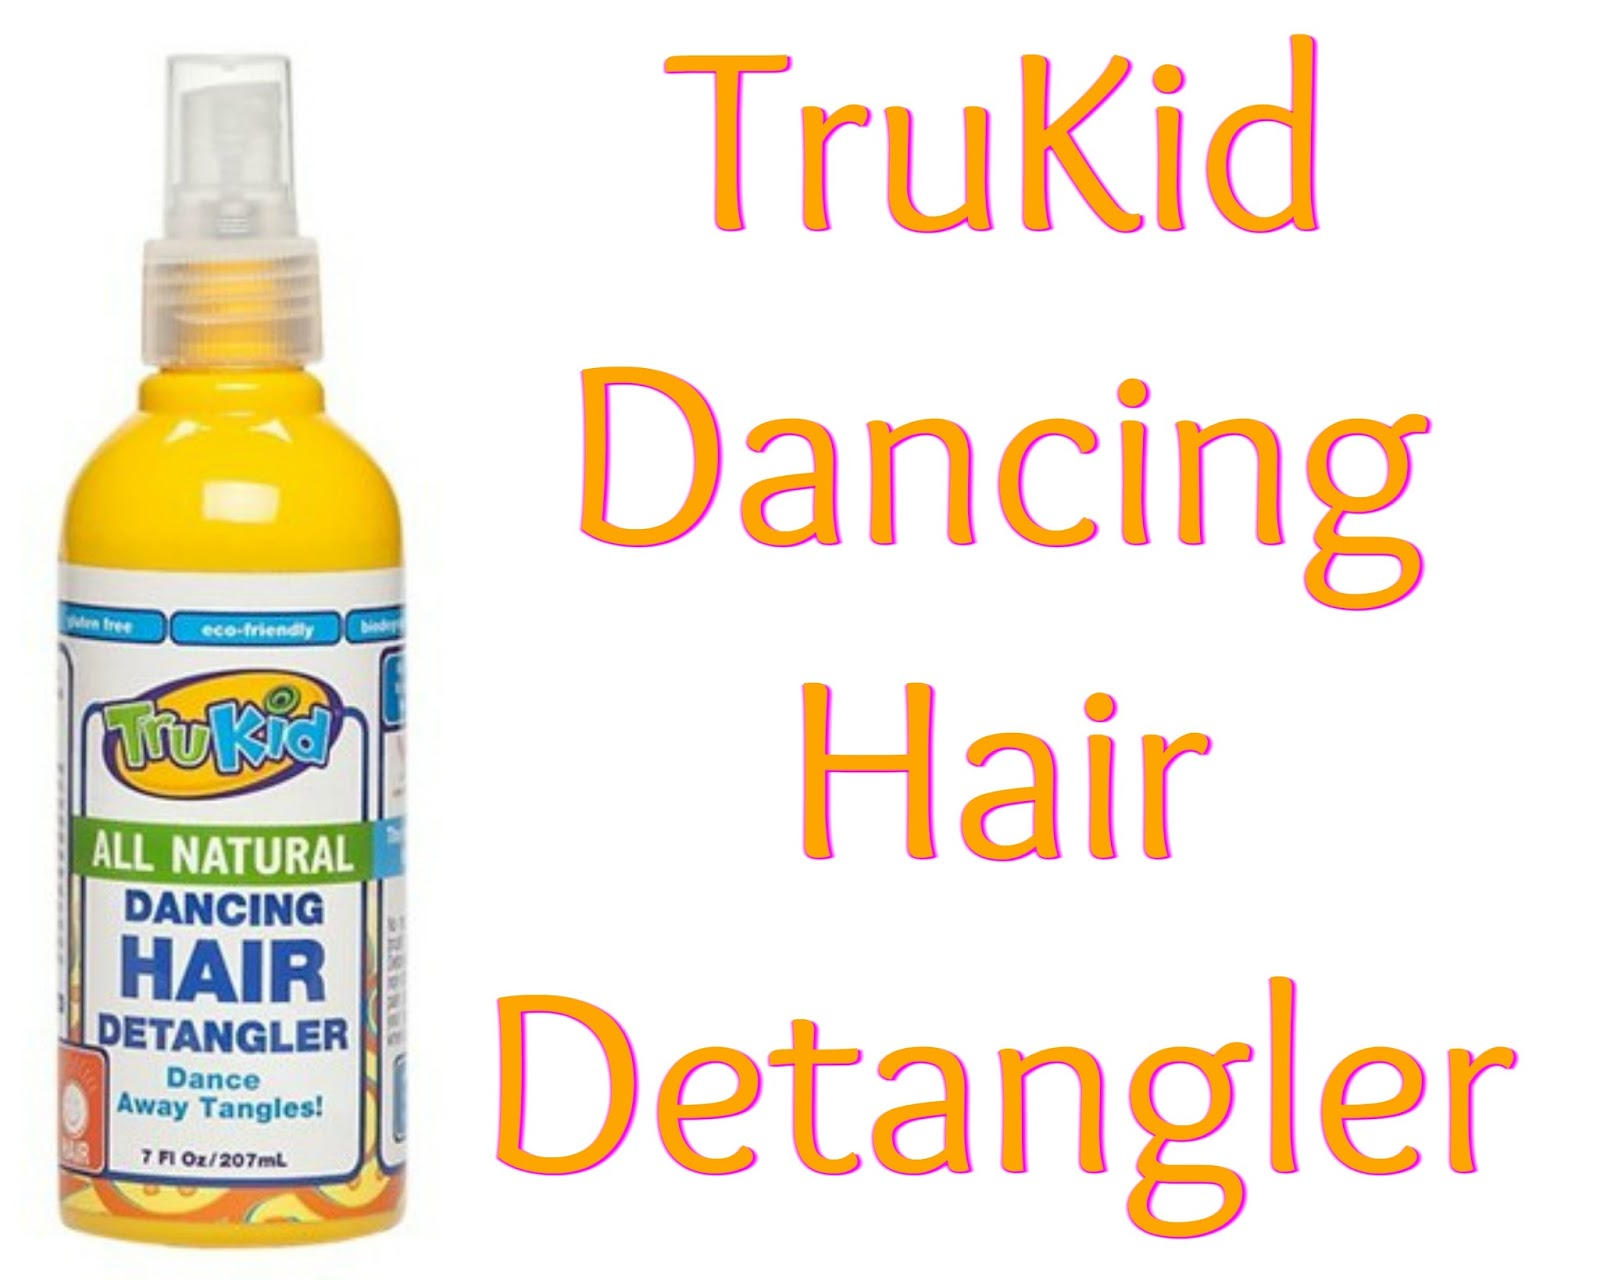 Click here to buy TruKid Dancing Hair Detangler created by mom for tangles.